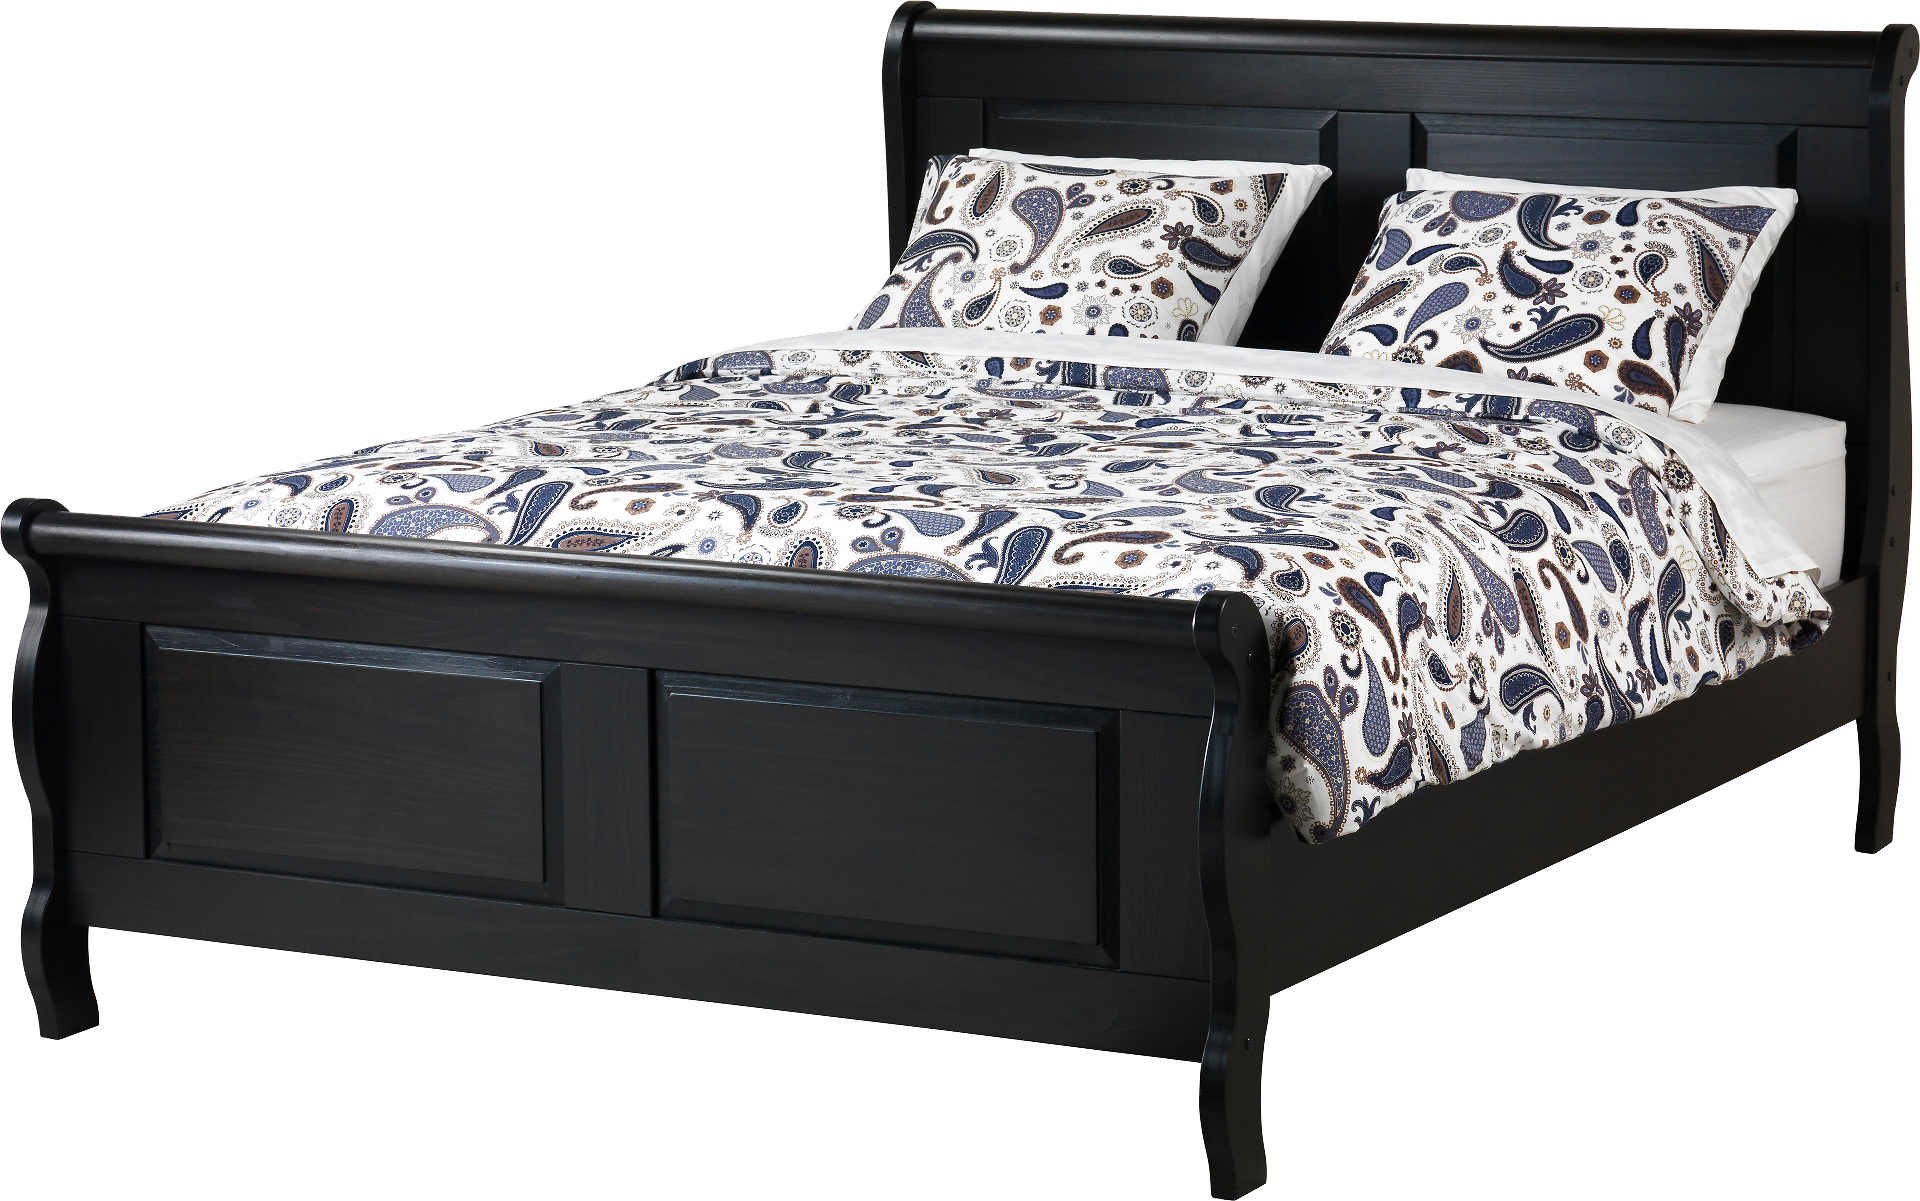 Home furniture png. Images free download bed